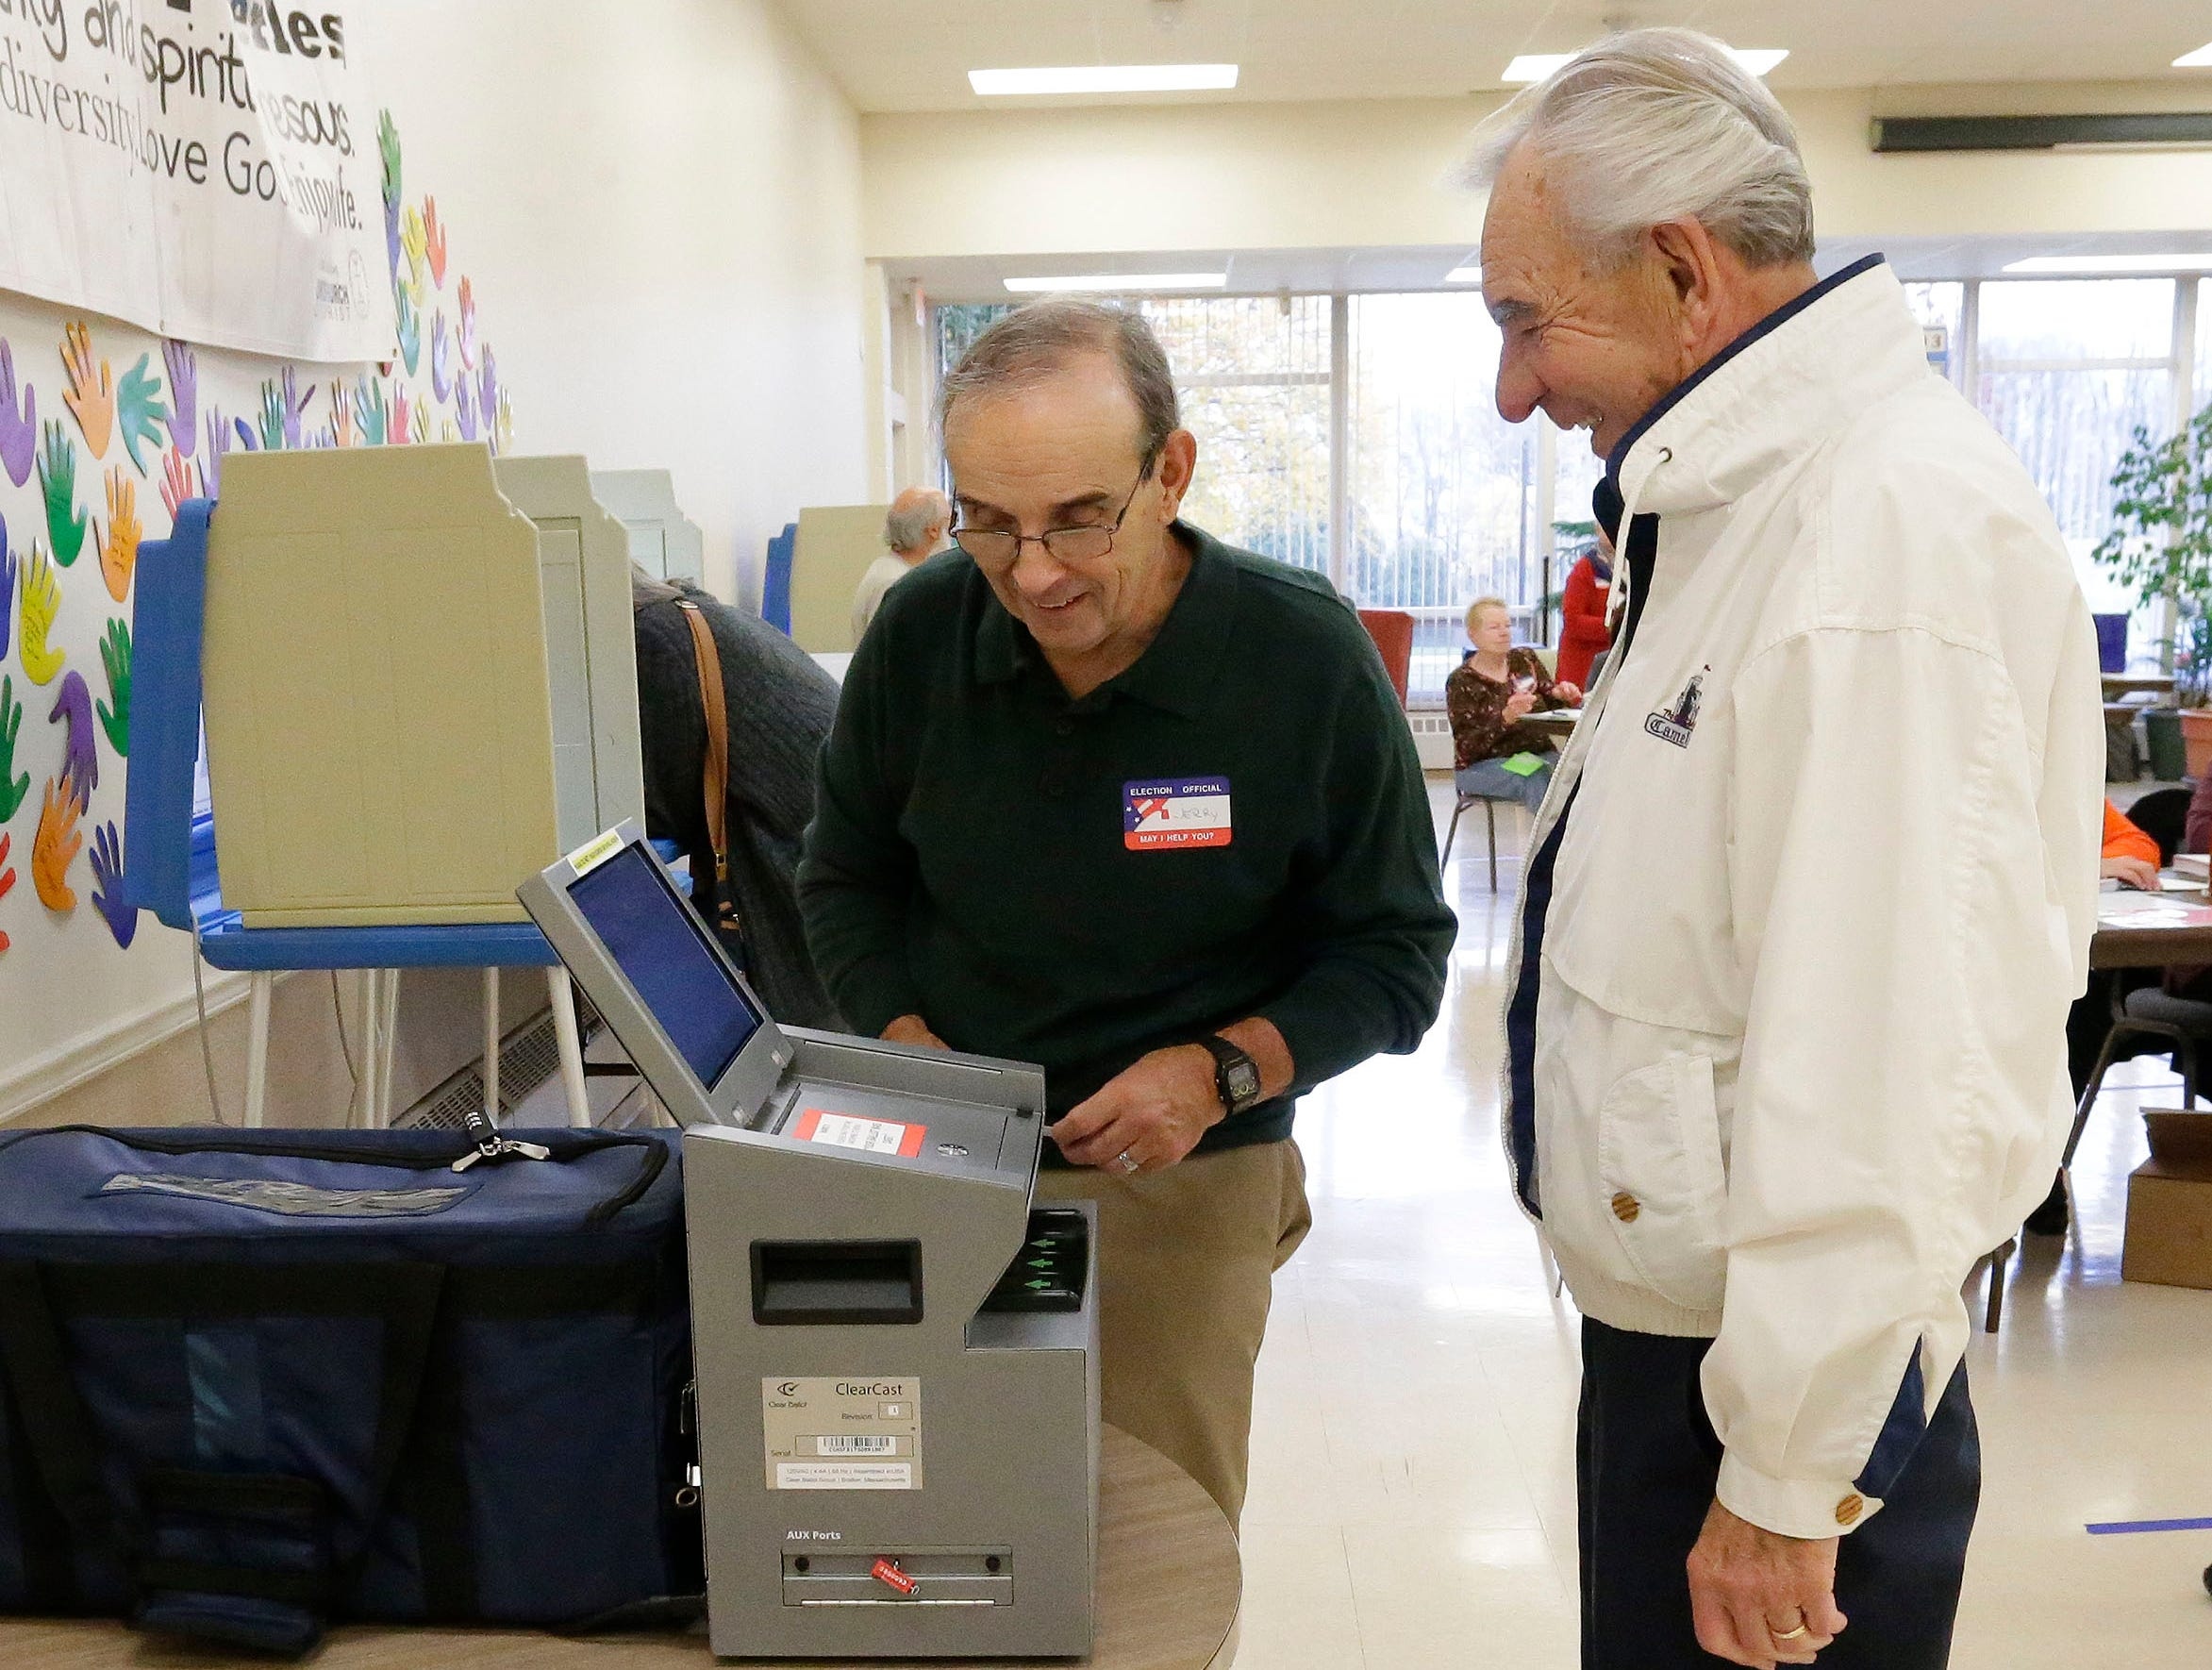 Poll worker Jerry Cramelt, left, instructs Jerry Pantel, right, how to correctly place his ballot in the box at the First Congregational Church poll, Tuesday, November 6, 2018, in Sheboygan, Wis.